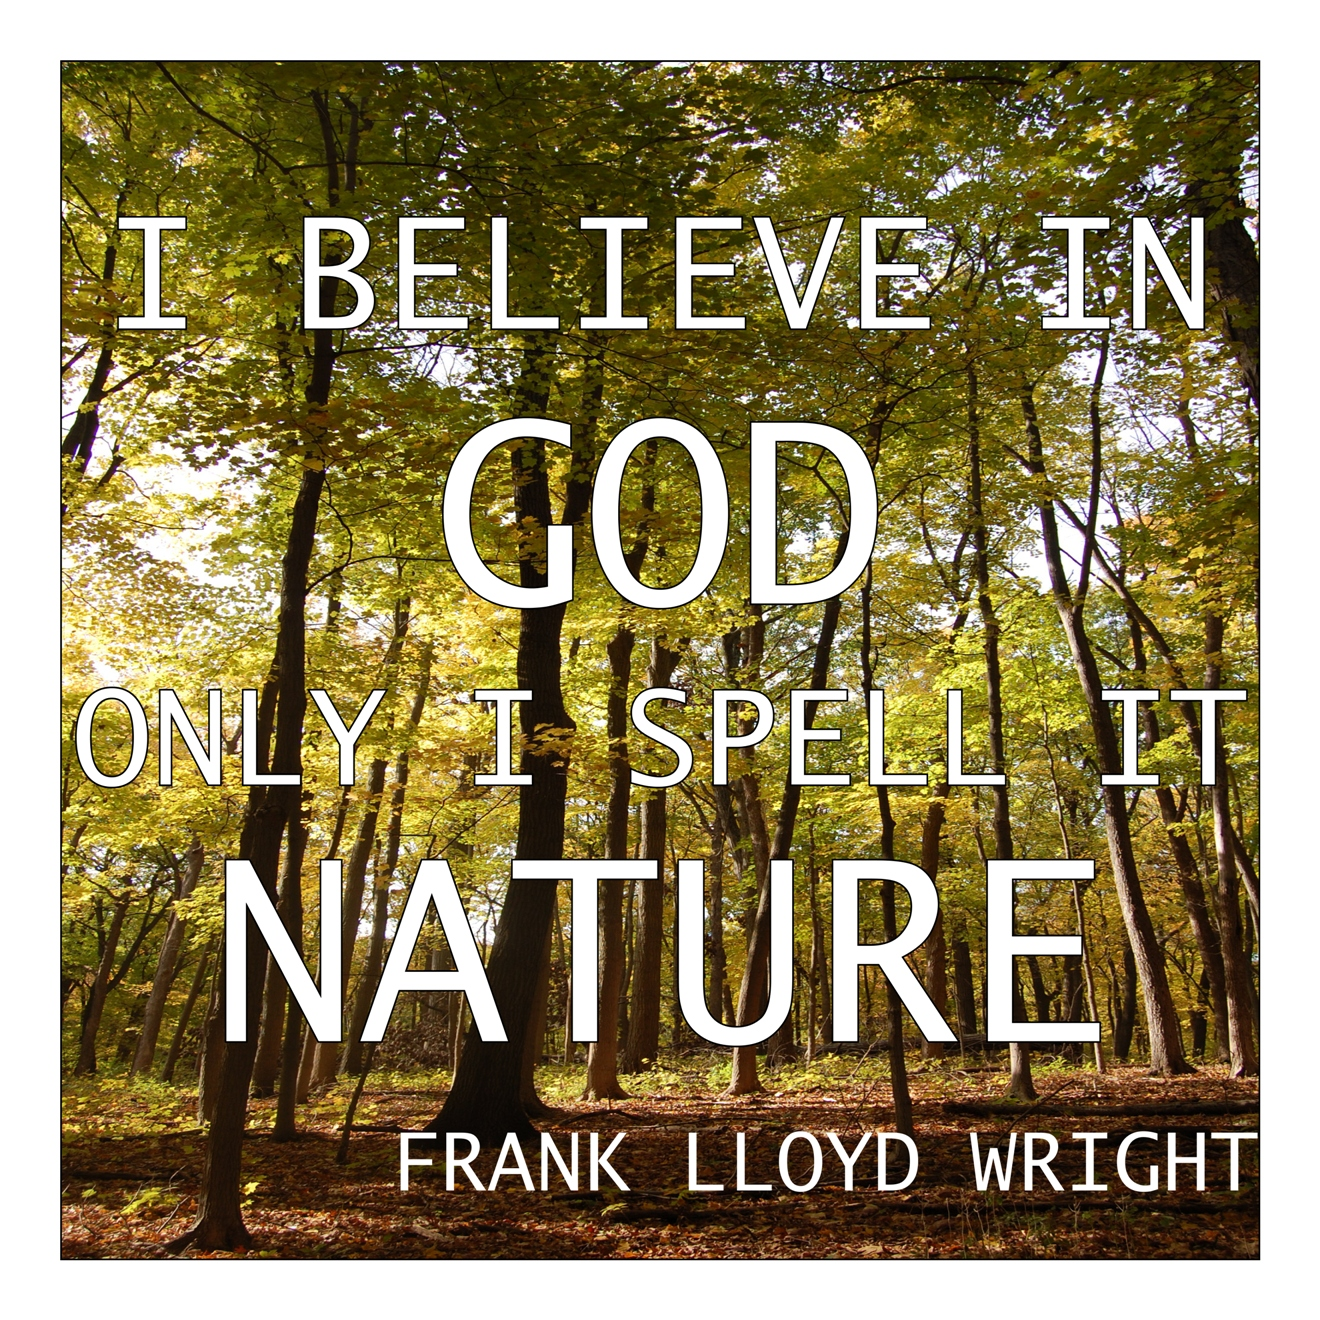 Wordless Wednesday   Frank Lloyd Wright Quote